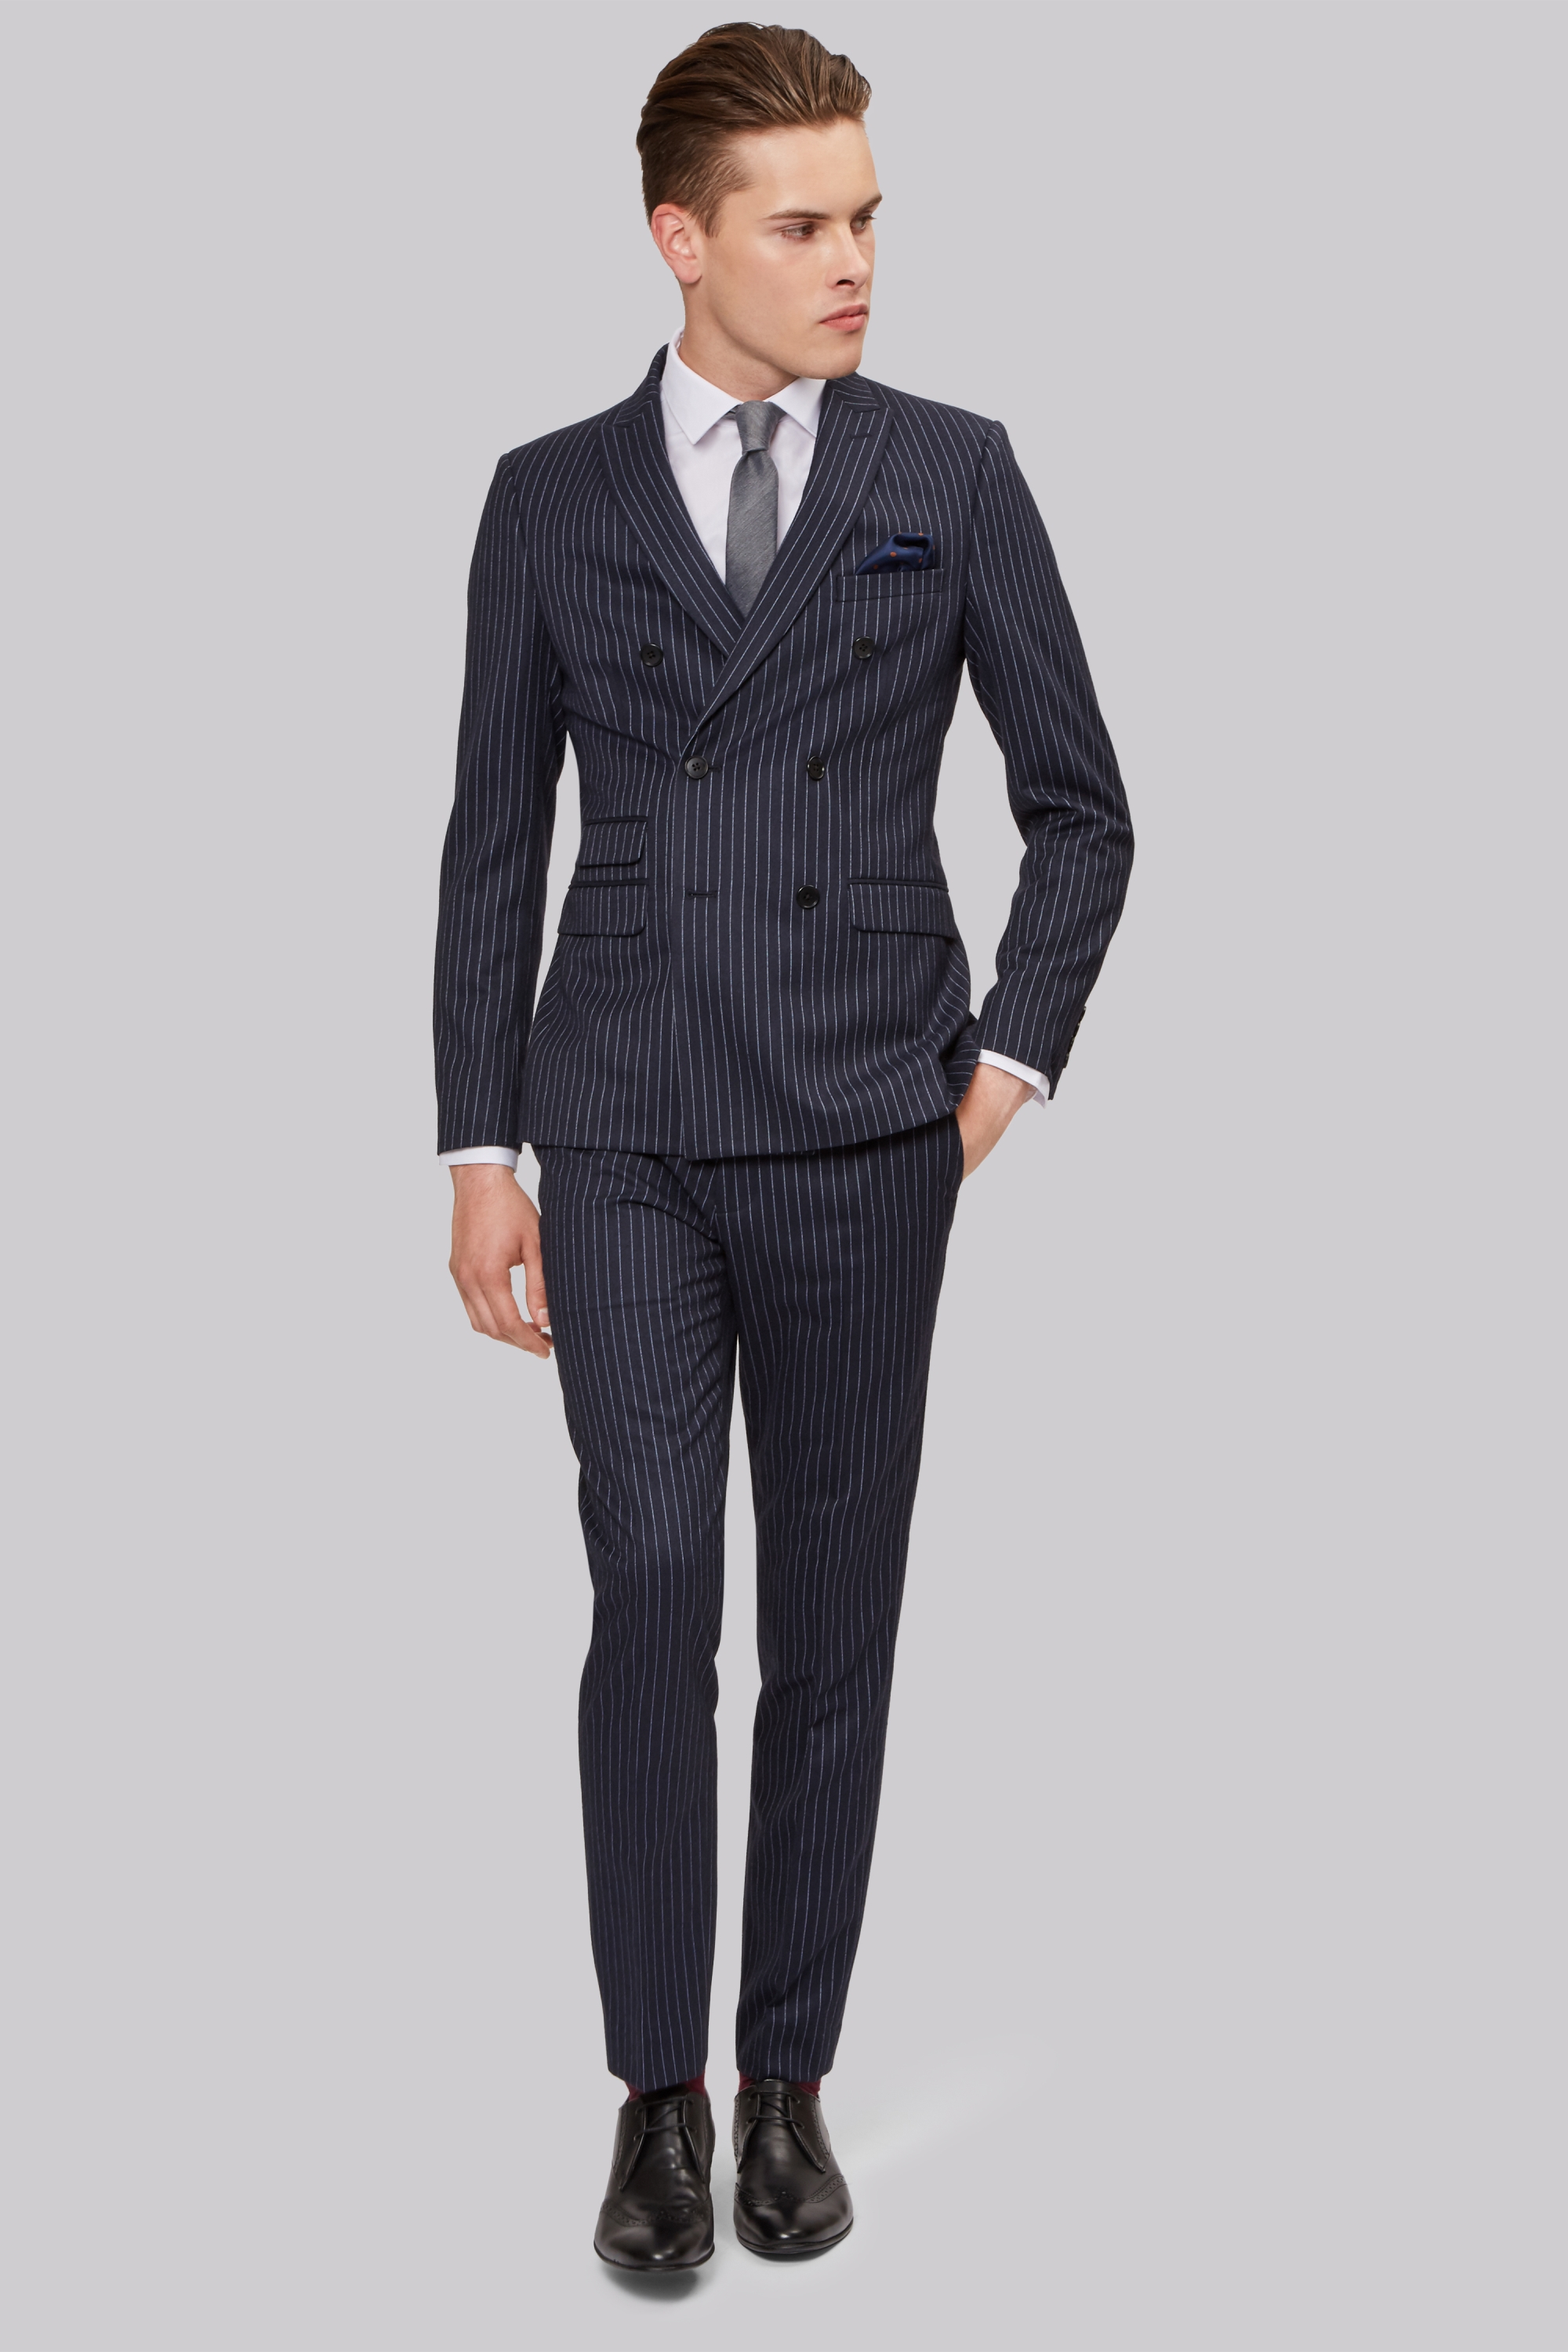 London Skinny Fit Navy Pinstripe Double Breasted Jacket